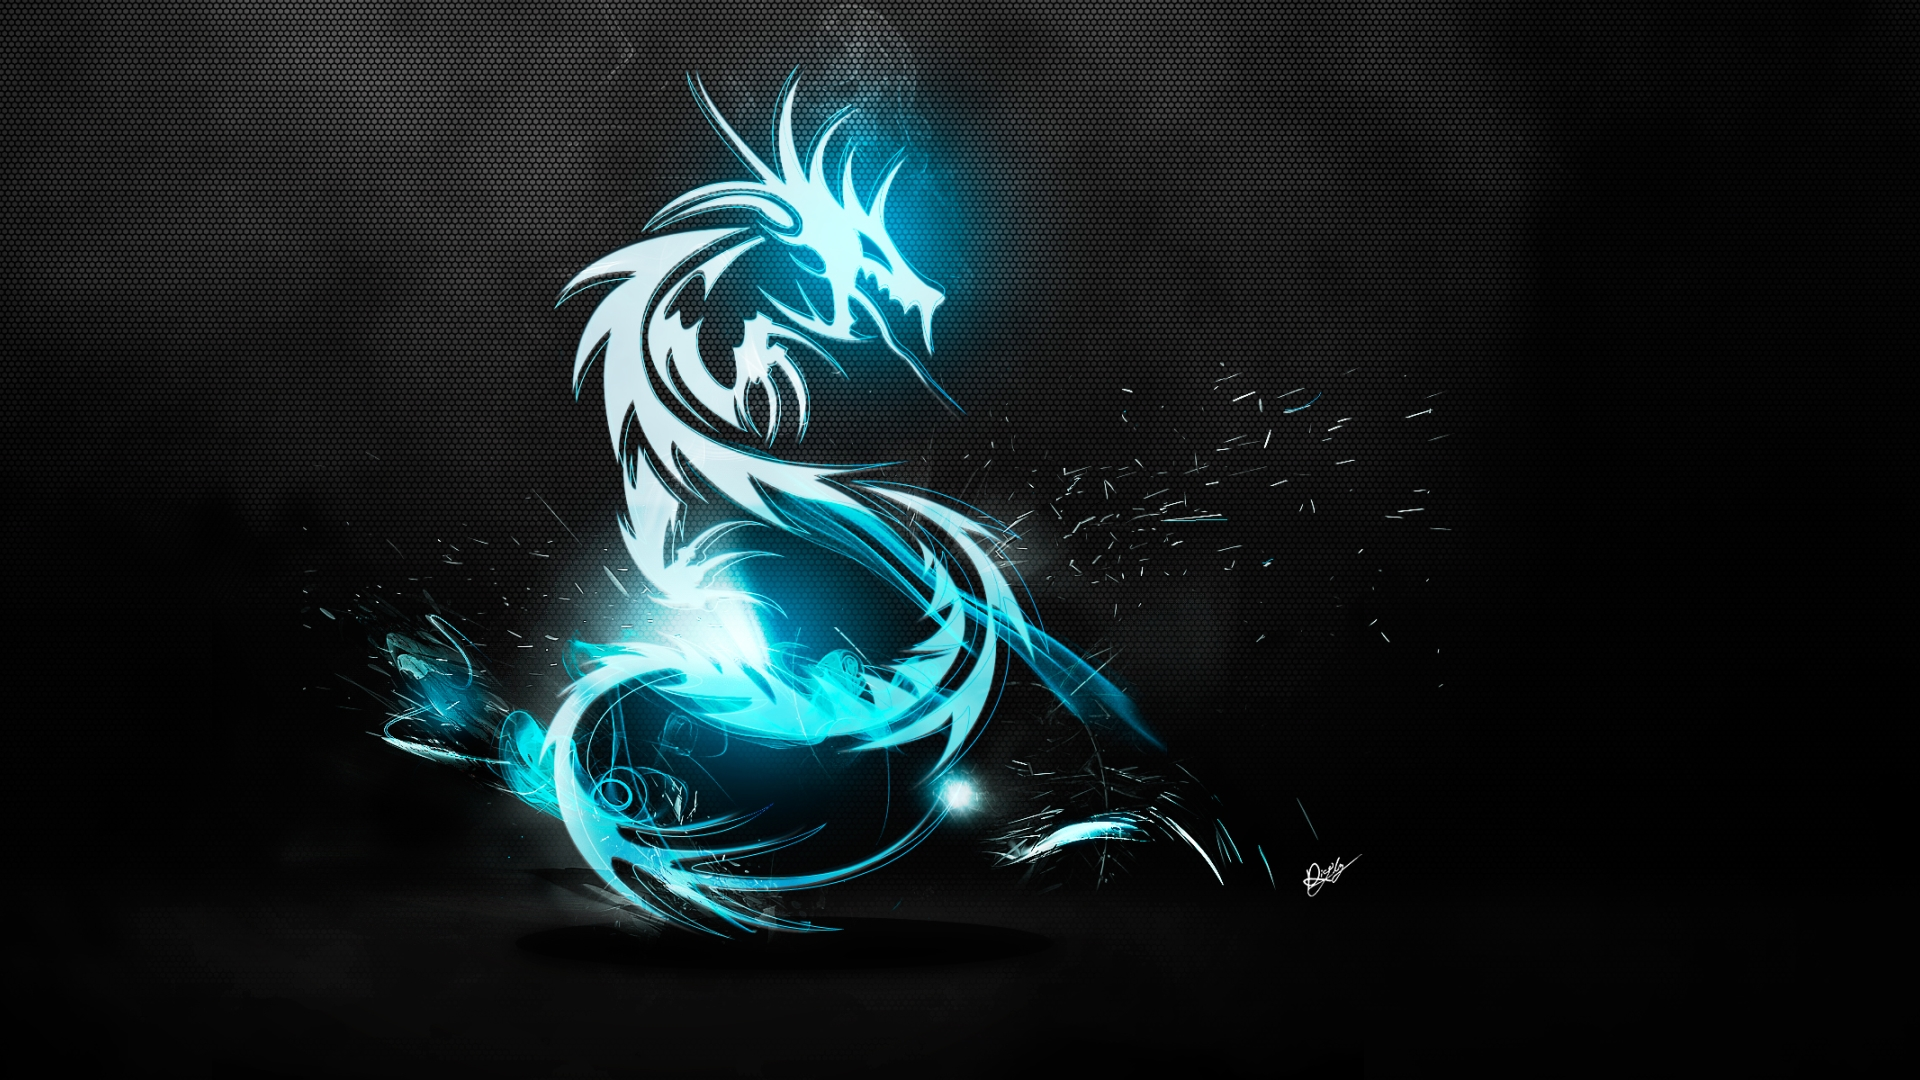 74+] Hd Dragon Wallpapers on WallpaperSafari